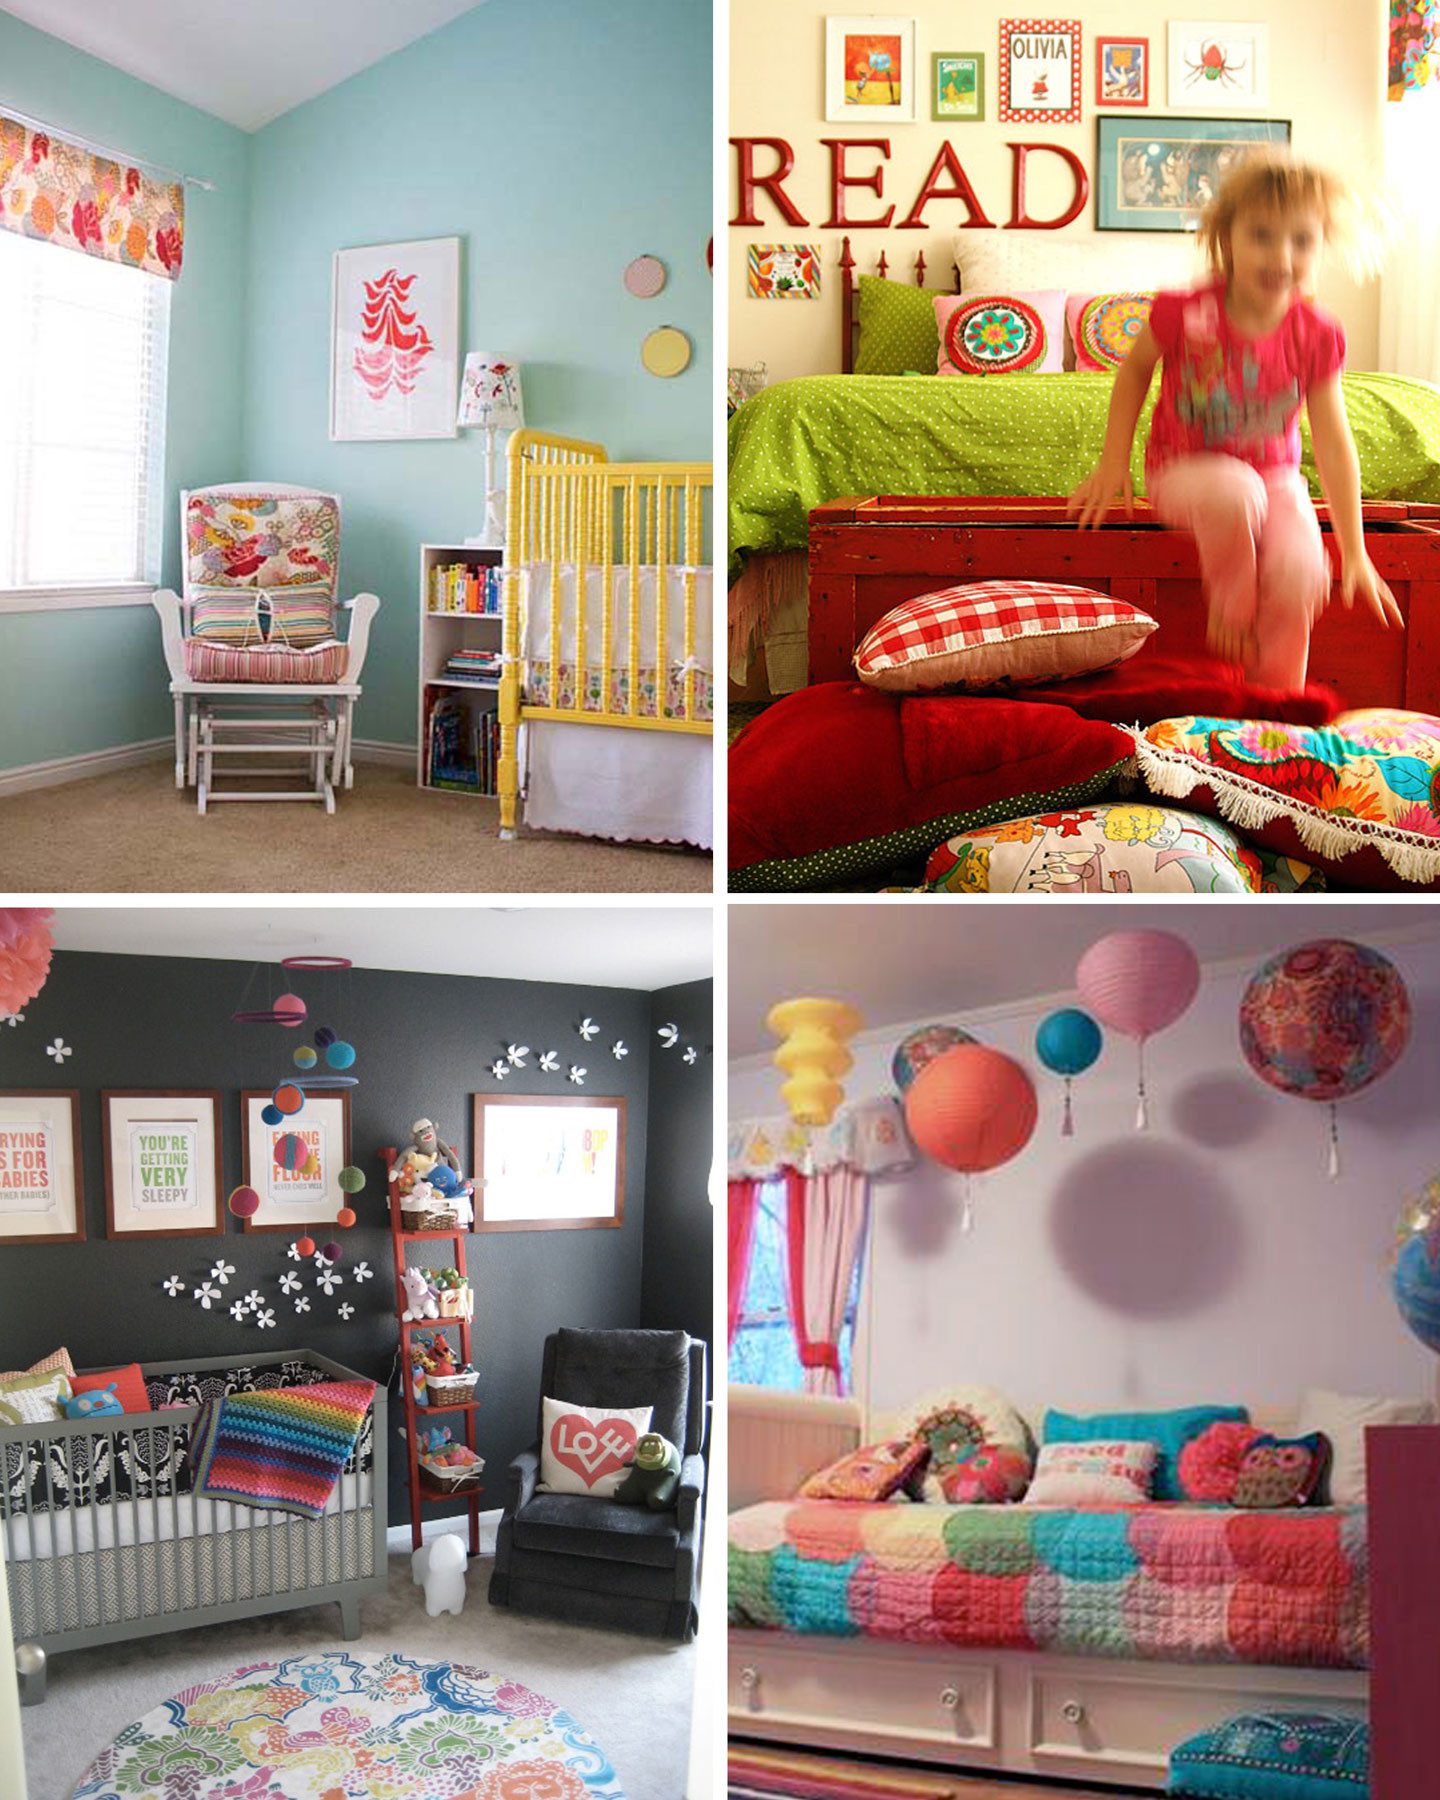 Best ideas about DIY Kids Bedrooms . Save or Pin DIY Friday Kids Room Inspiration Now.